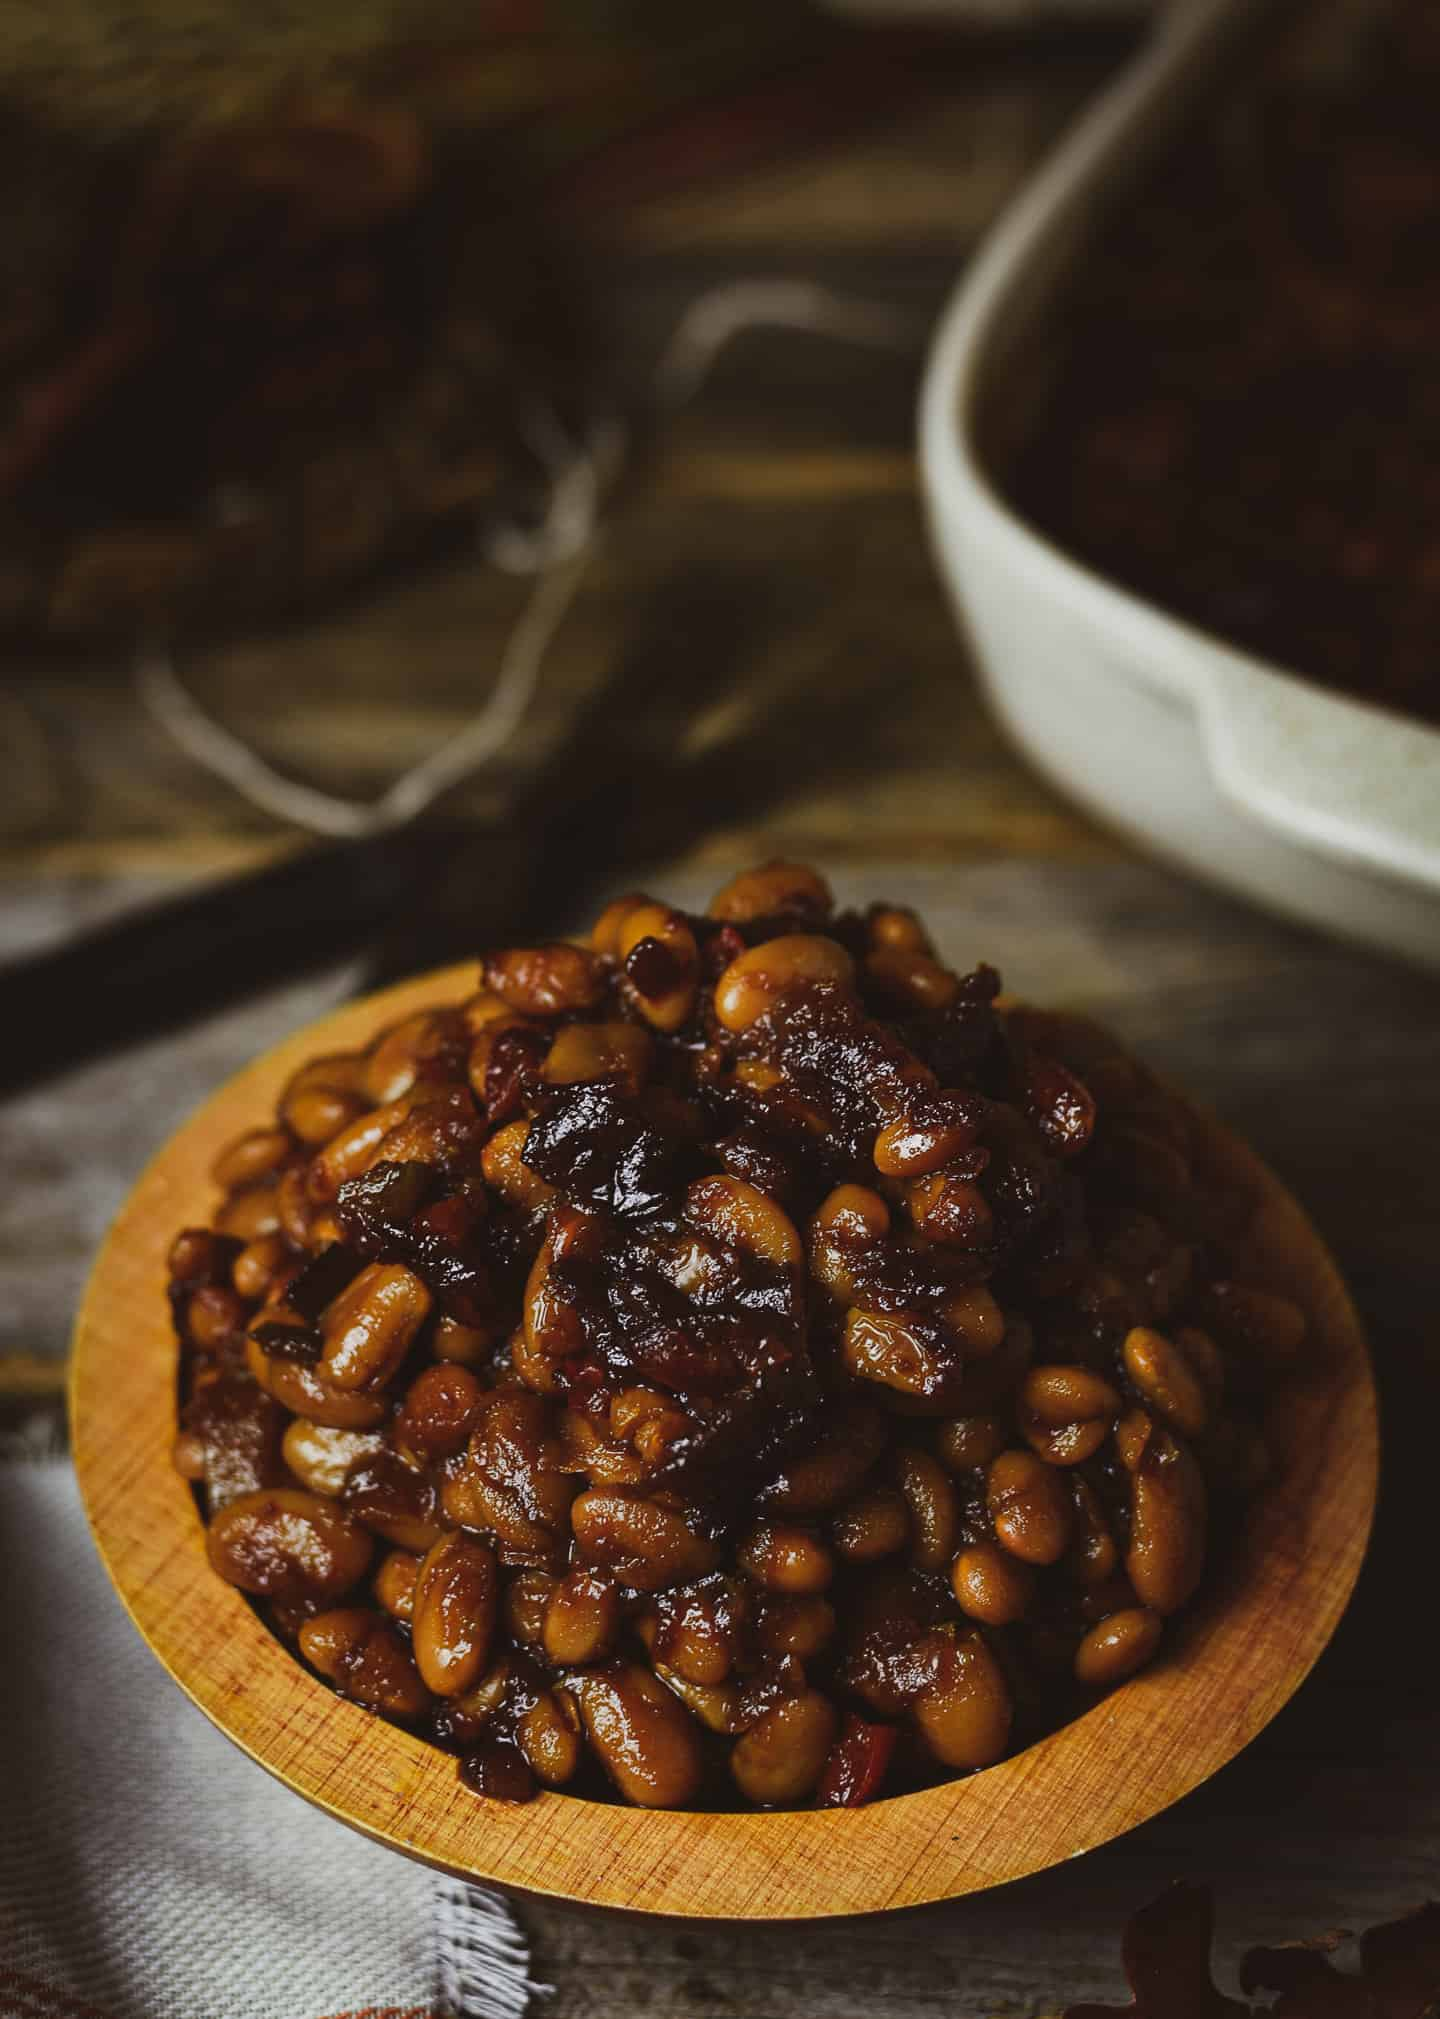 Baked beans in wooden bowl.